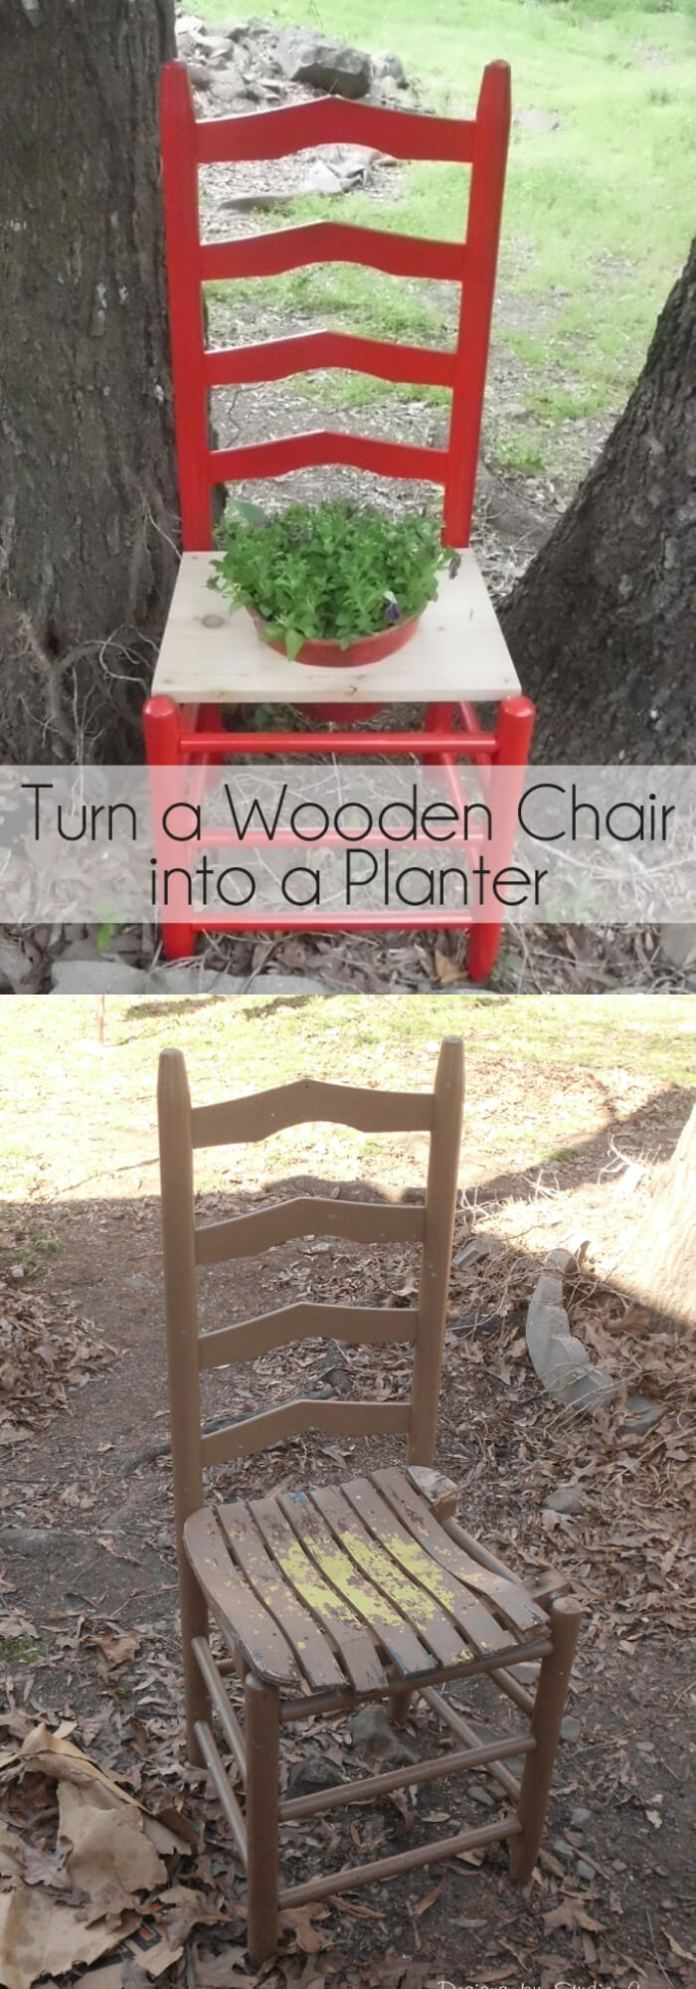 Turn a wooden chair into a planter | Creative Upcycled DIY Chair Planter Ideas For Your Garden